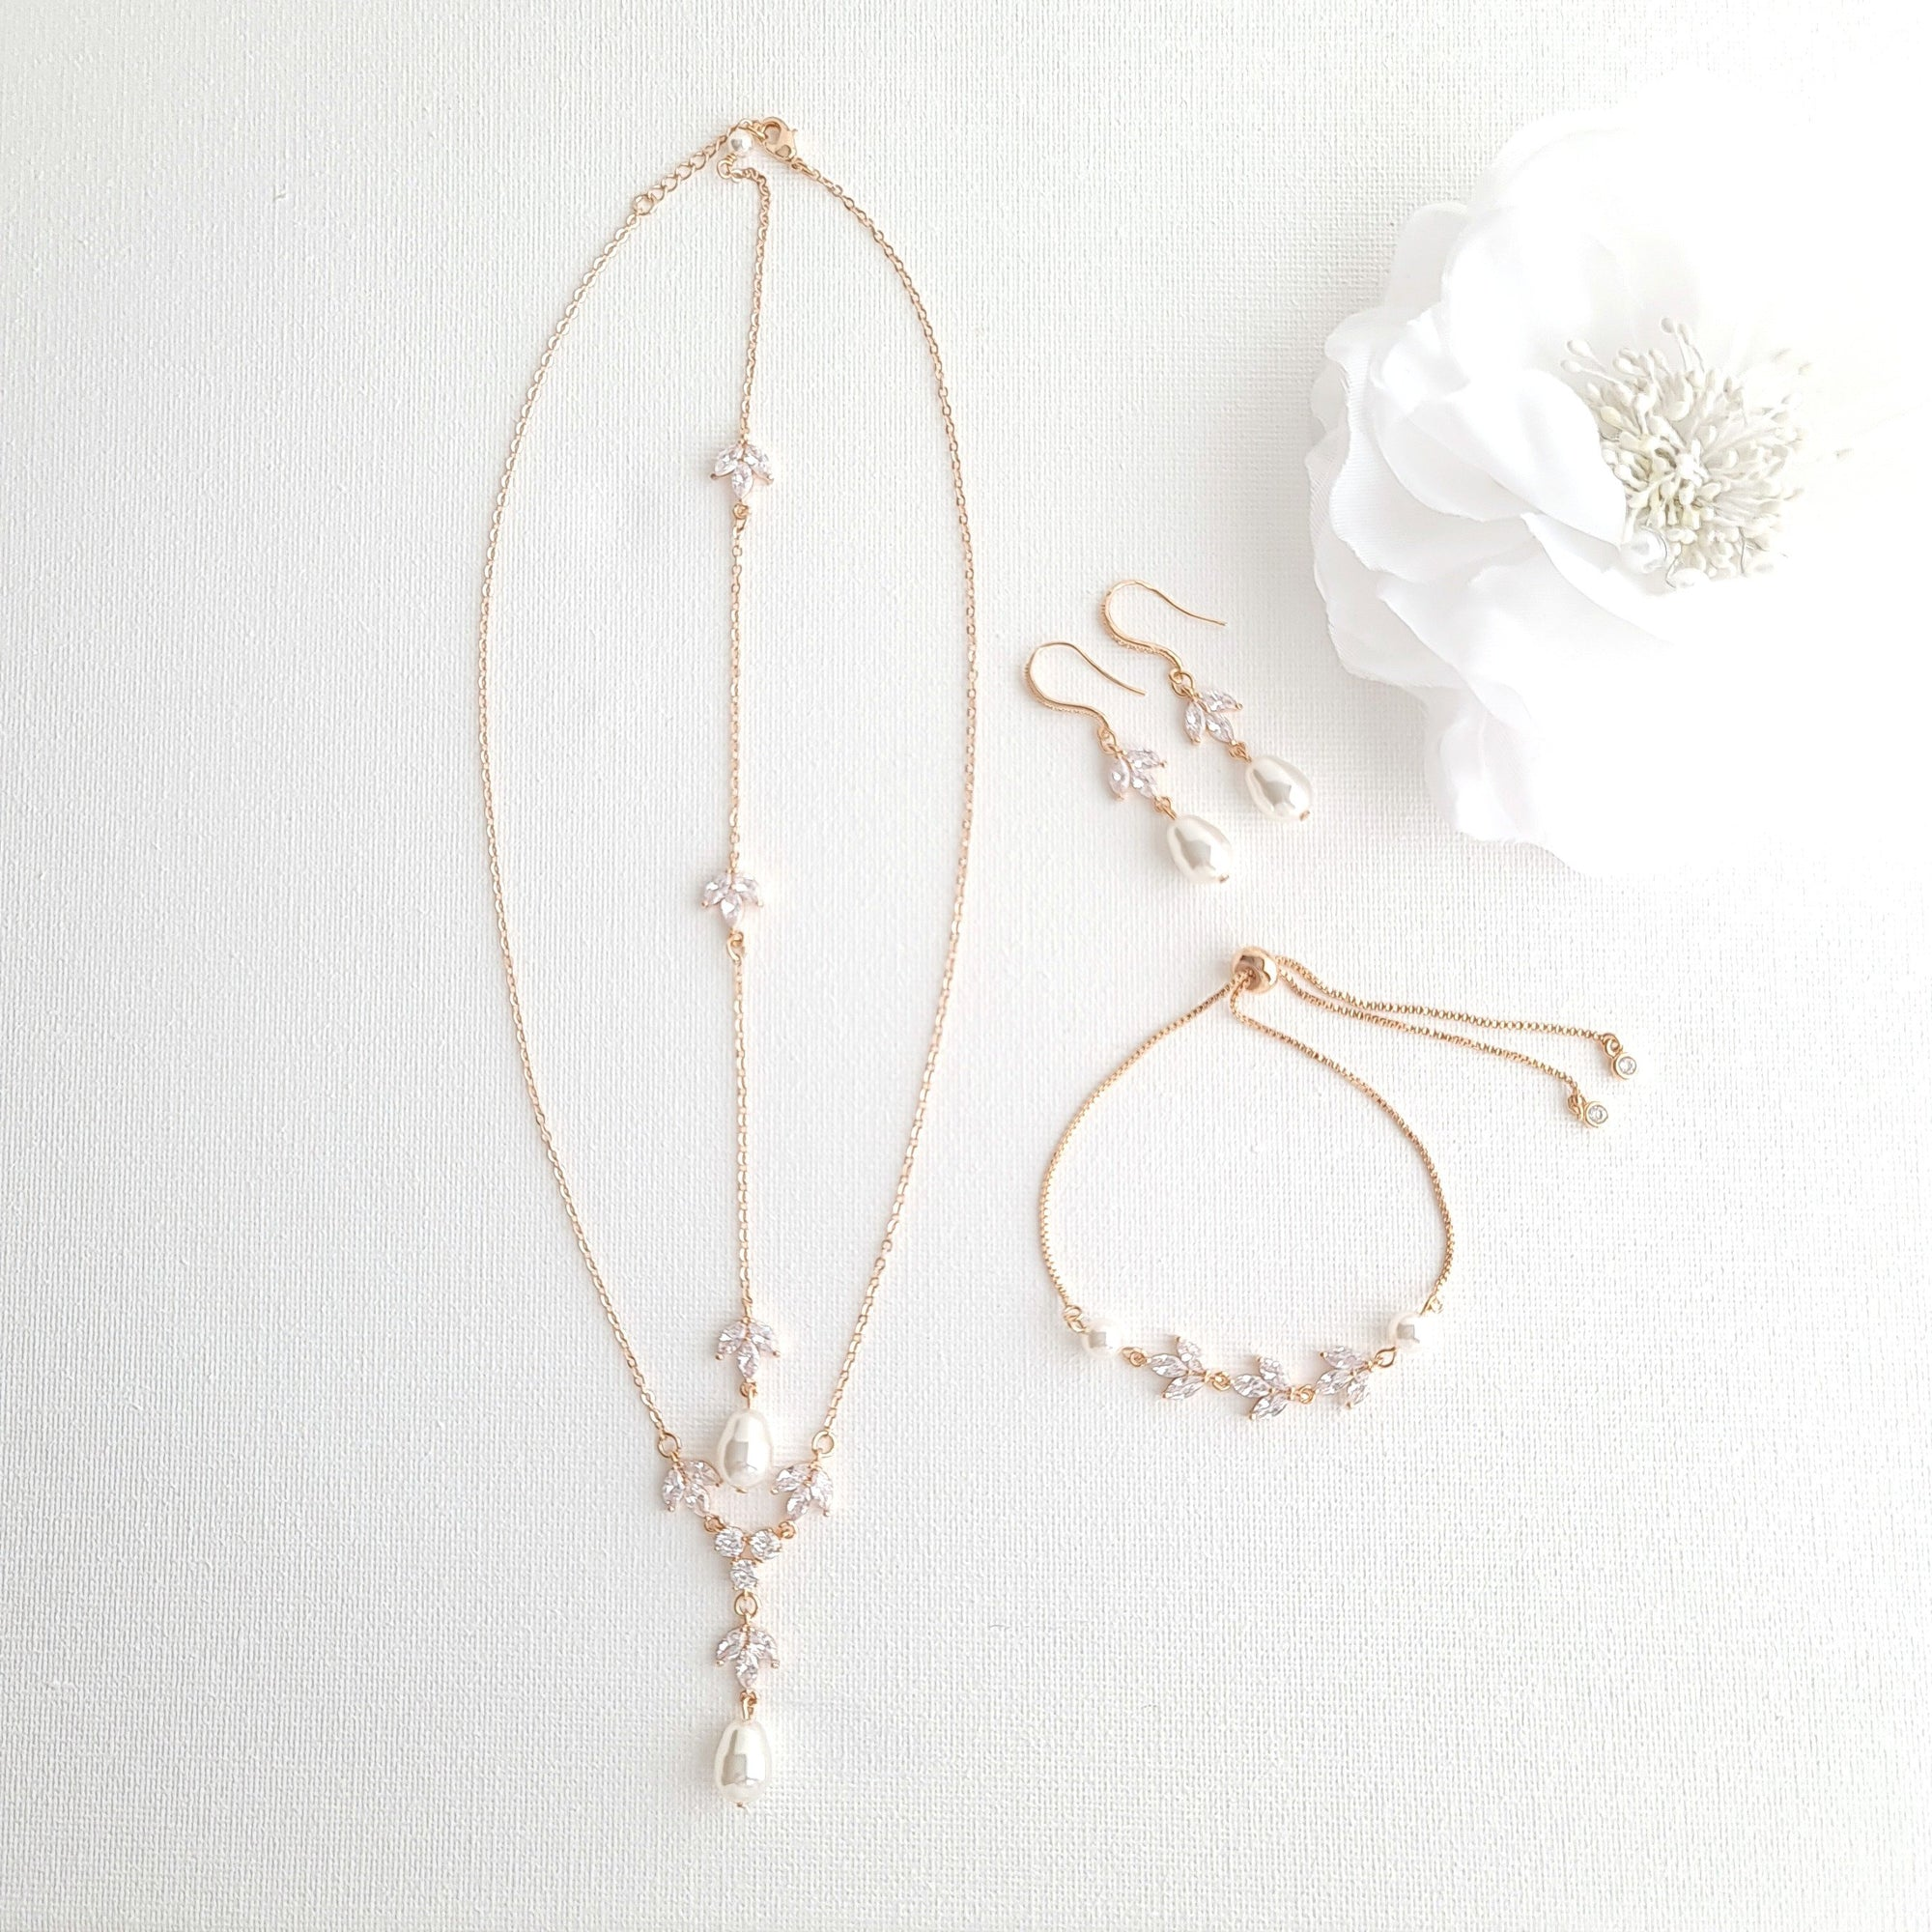 Jewelry Set for brides in Simple Design- Rose Gold- Leila - PoetryDesigns